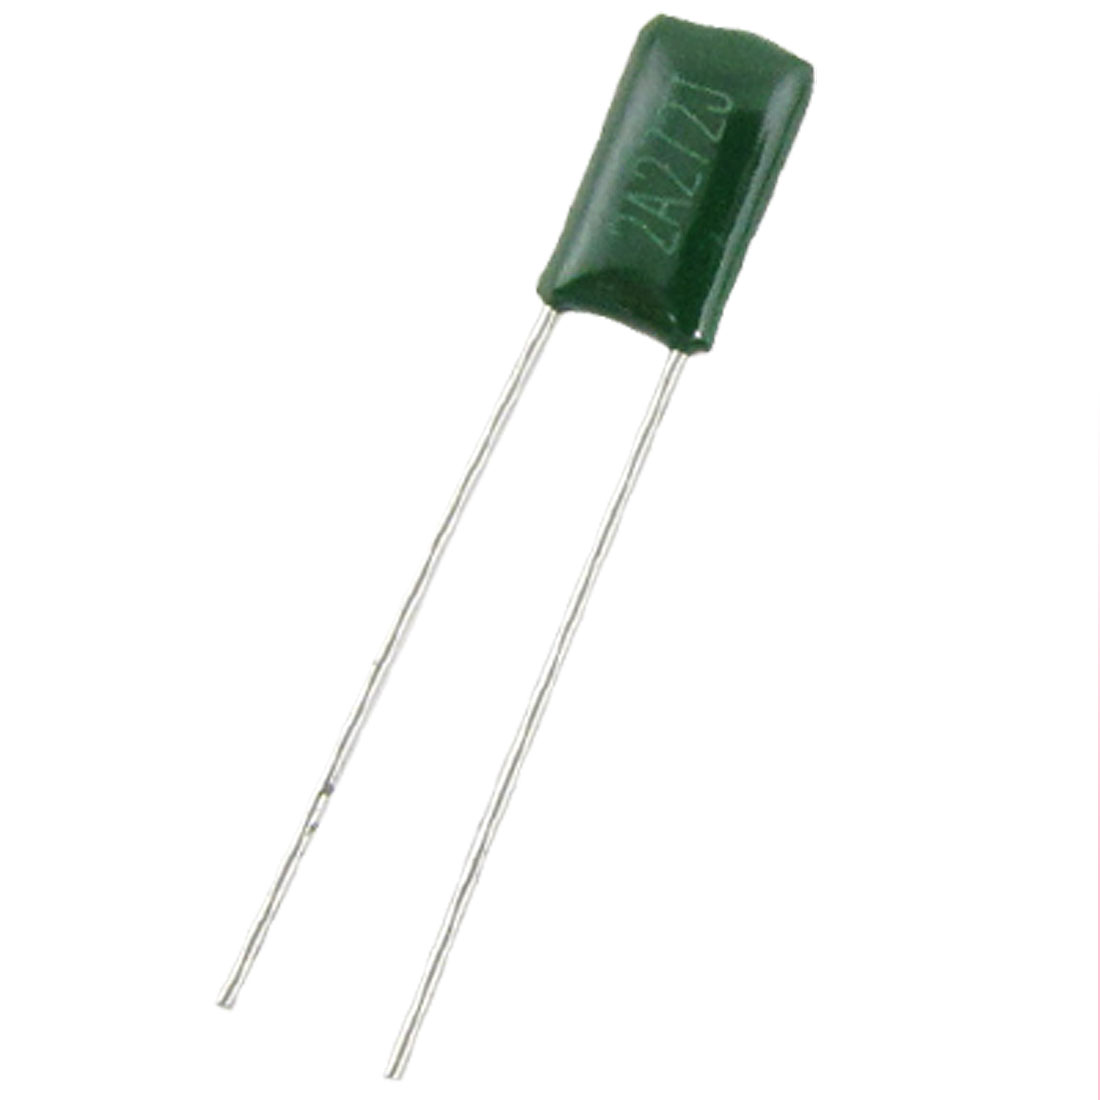 100V 2700pF DIP Mylar Polyester Film Capacitors(Bag of 100)